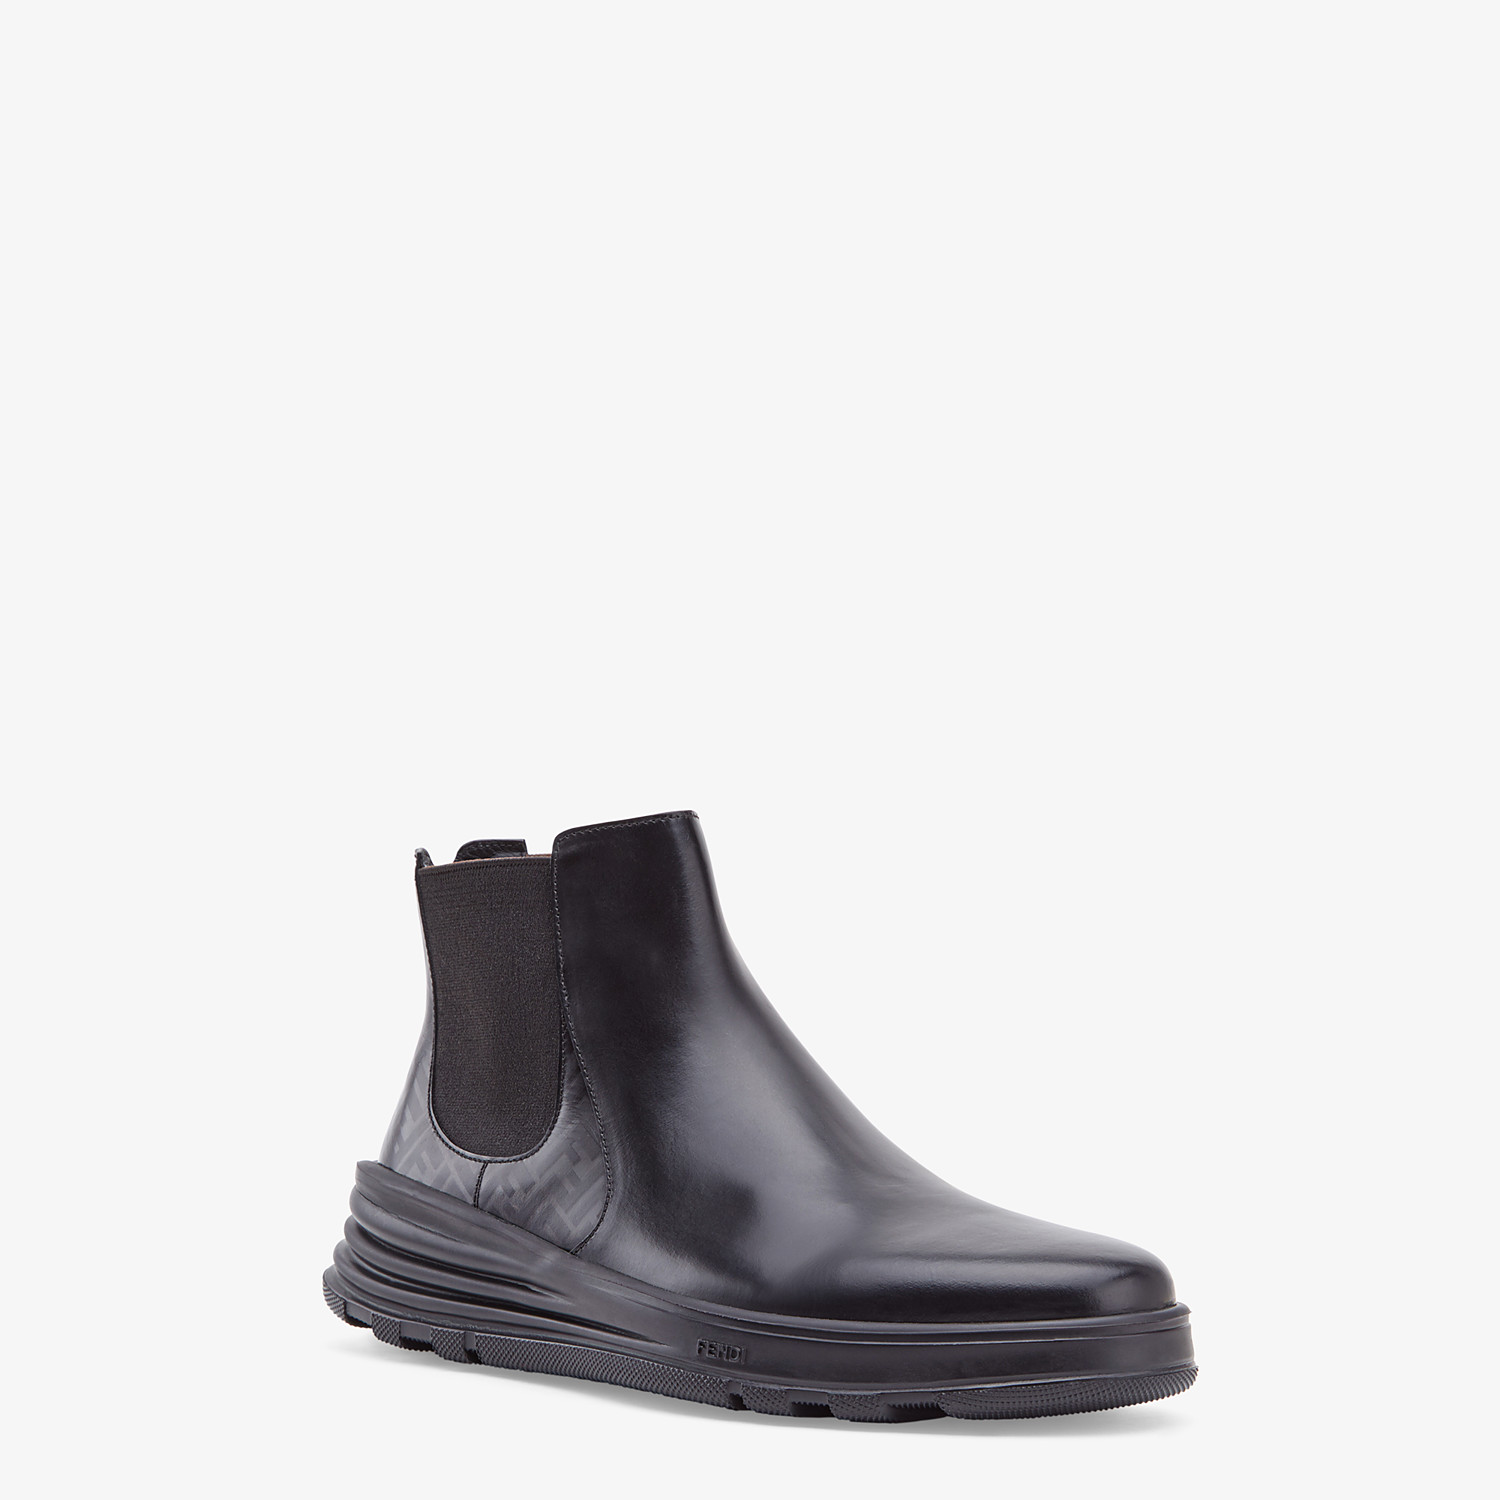 FENDI CHELSEA - Black leather ankle boots - view 2 detail